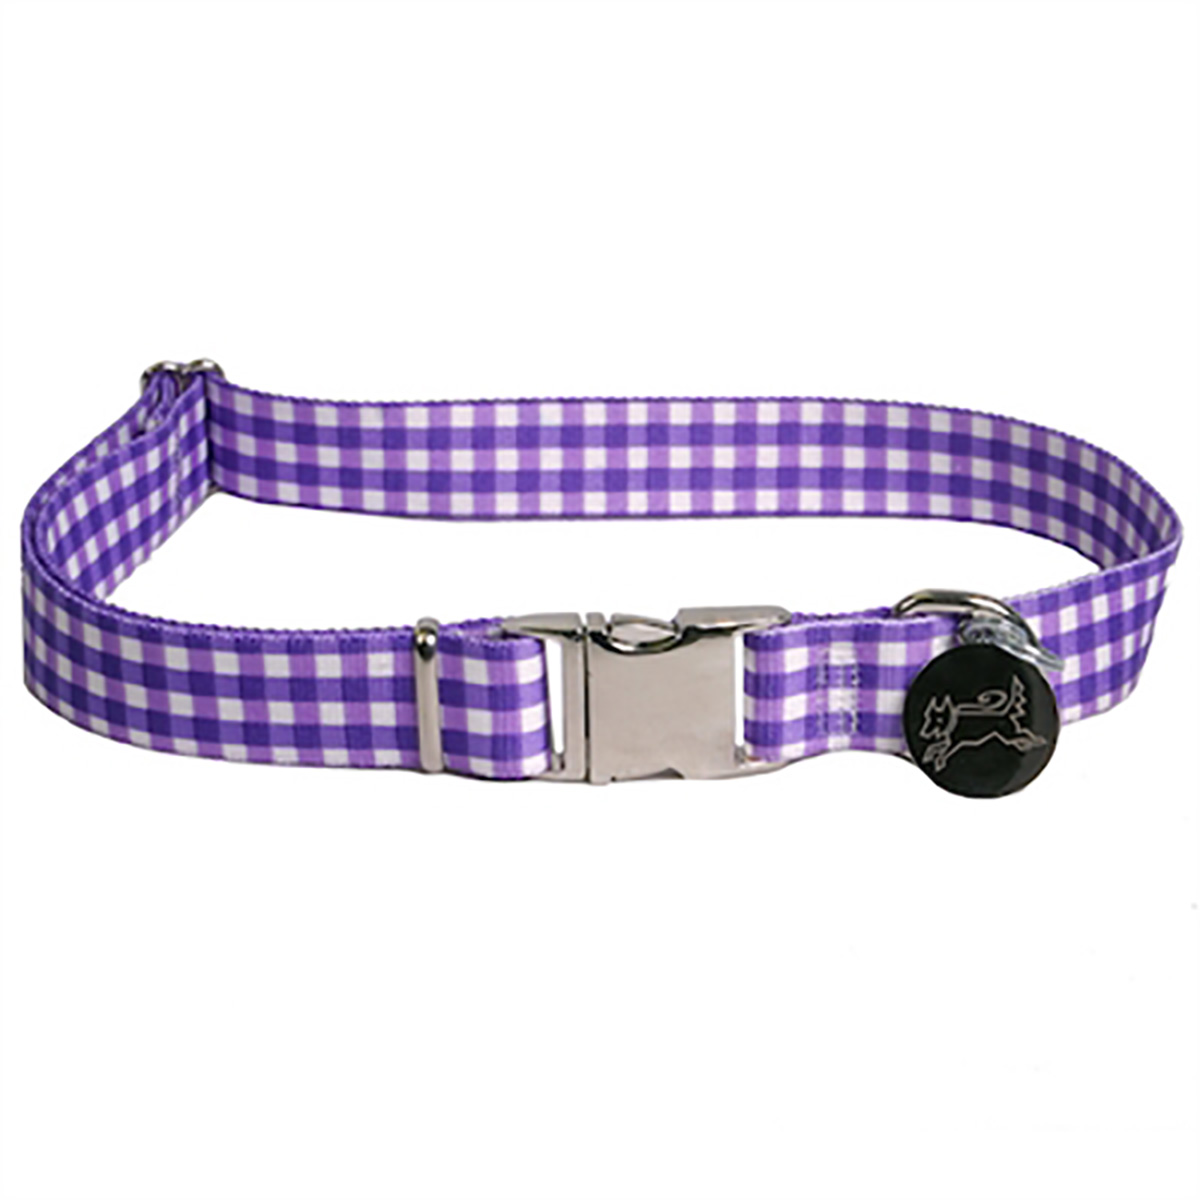 Southern Dawg Gingham Dog Collar by Yellow Dog - Purple